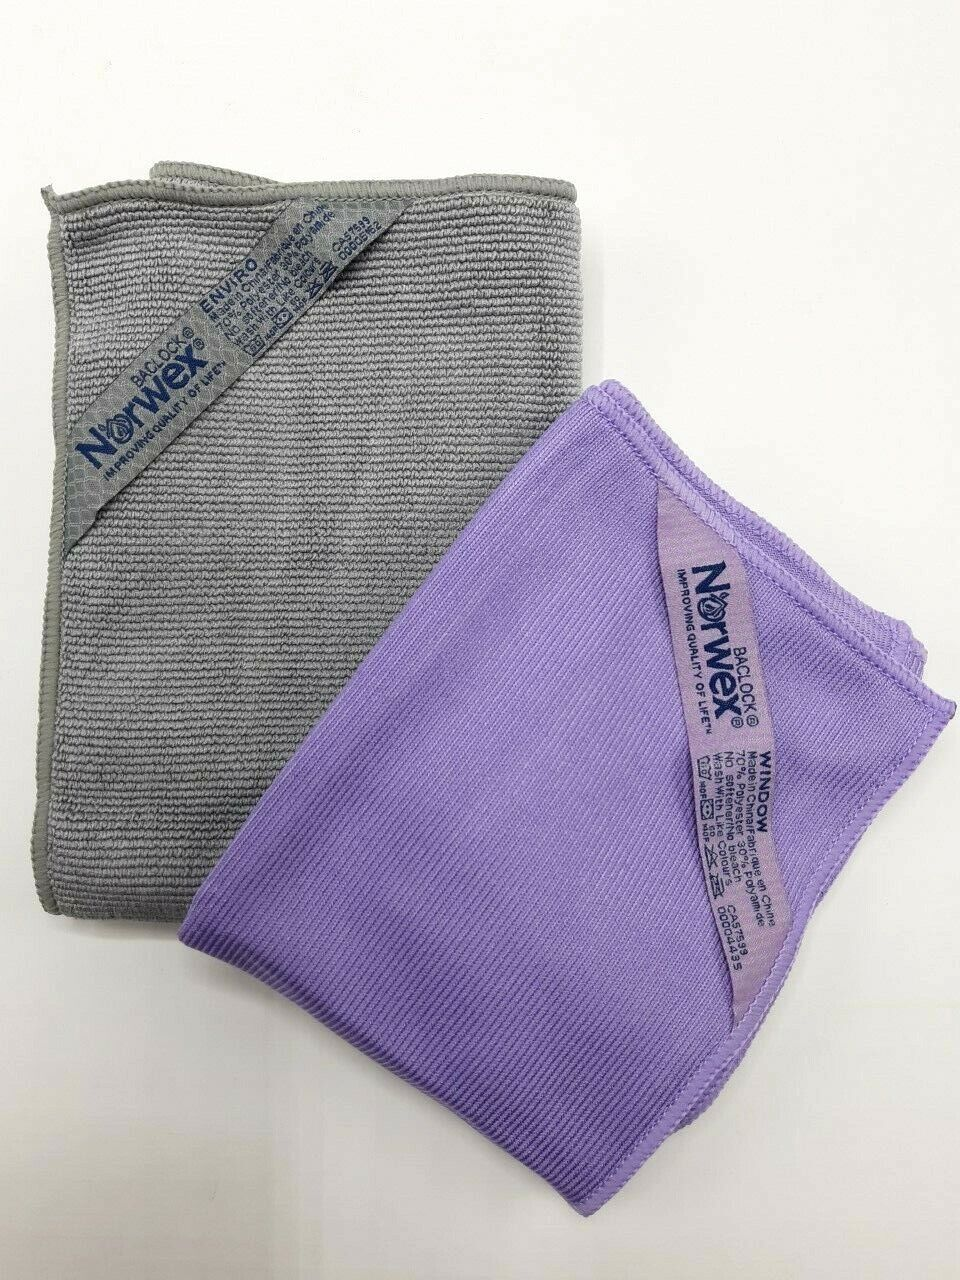 Norwex Basic Package/Set, EnviroCloth, Window Cloth